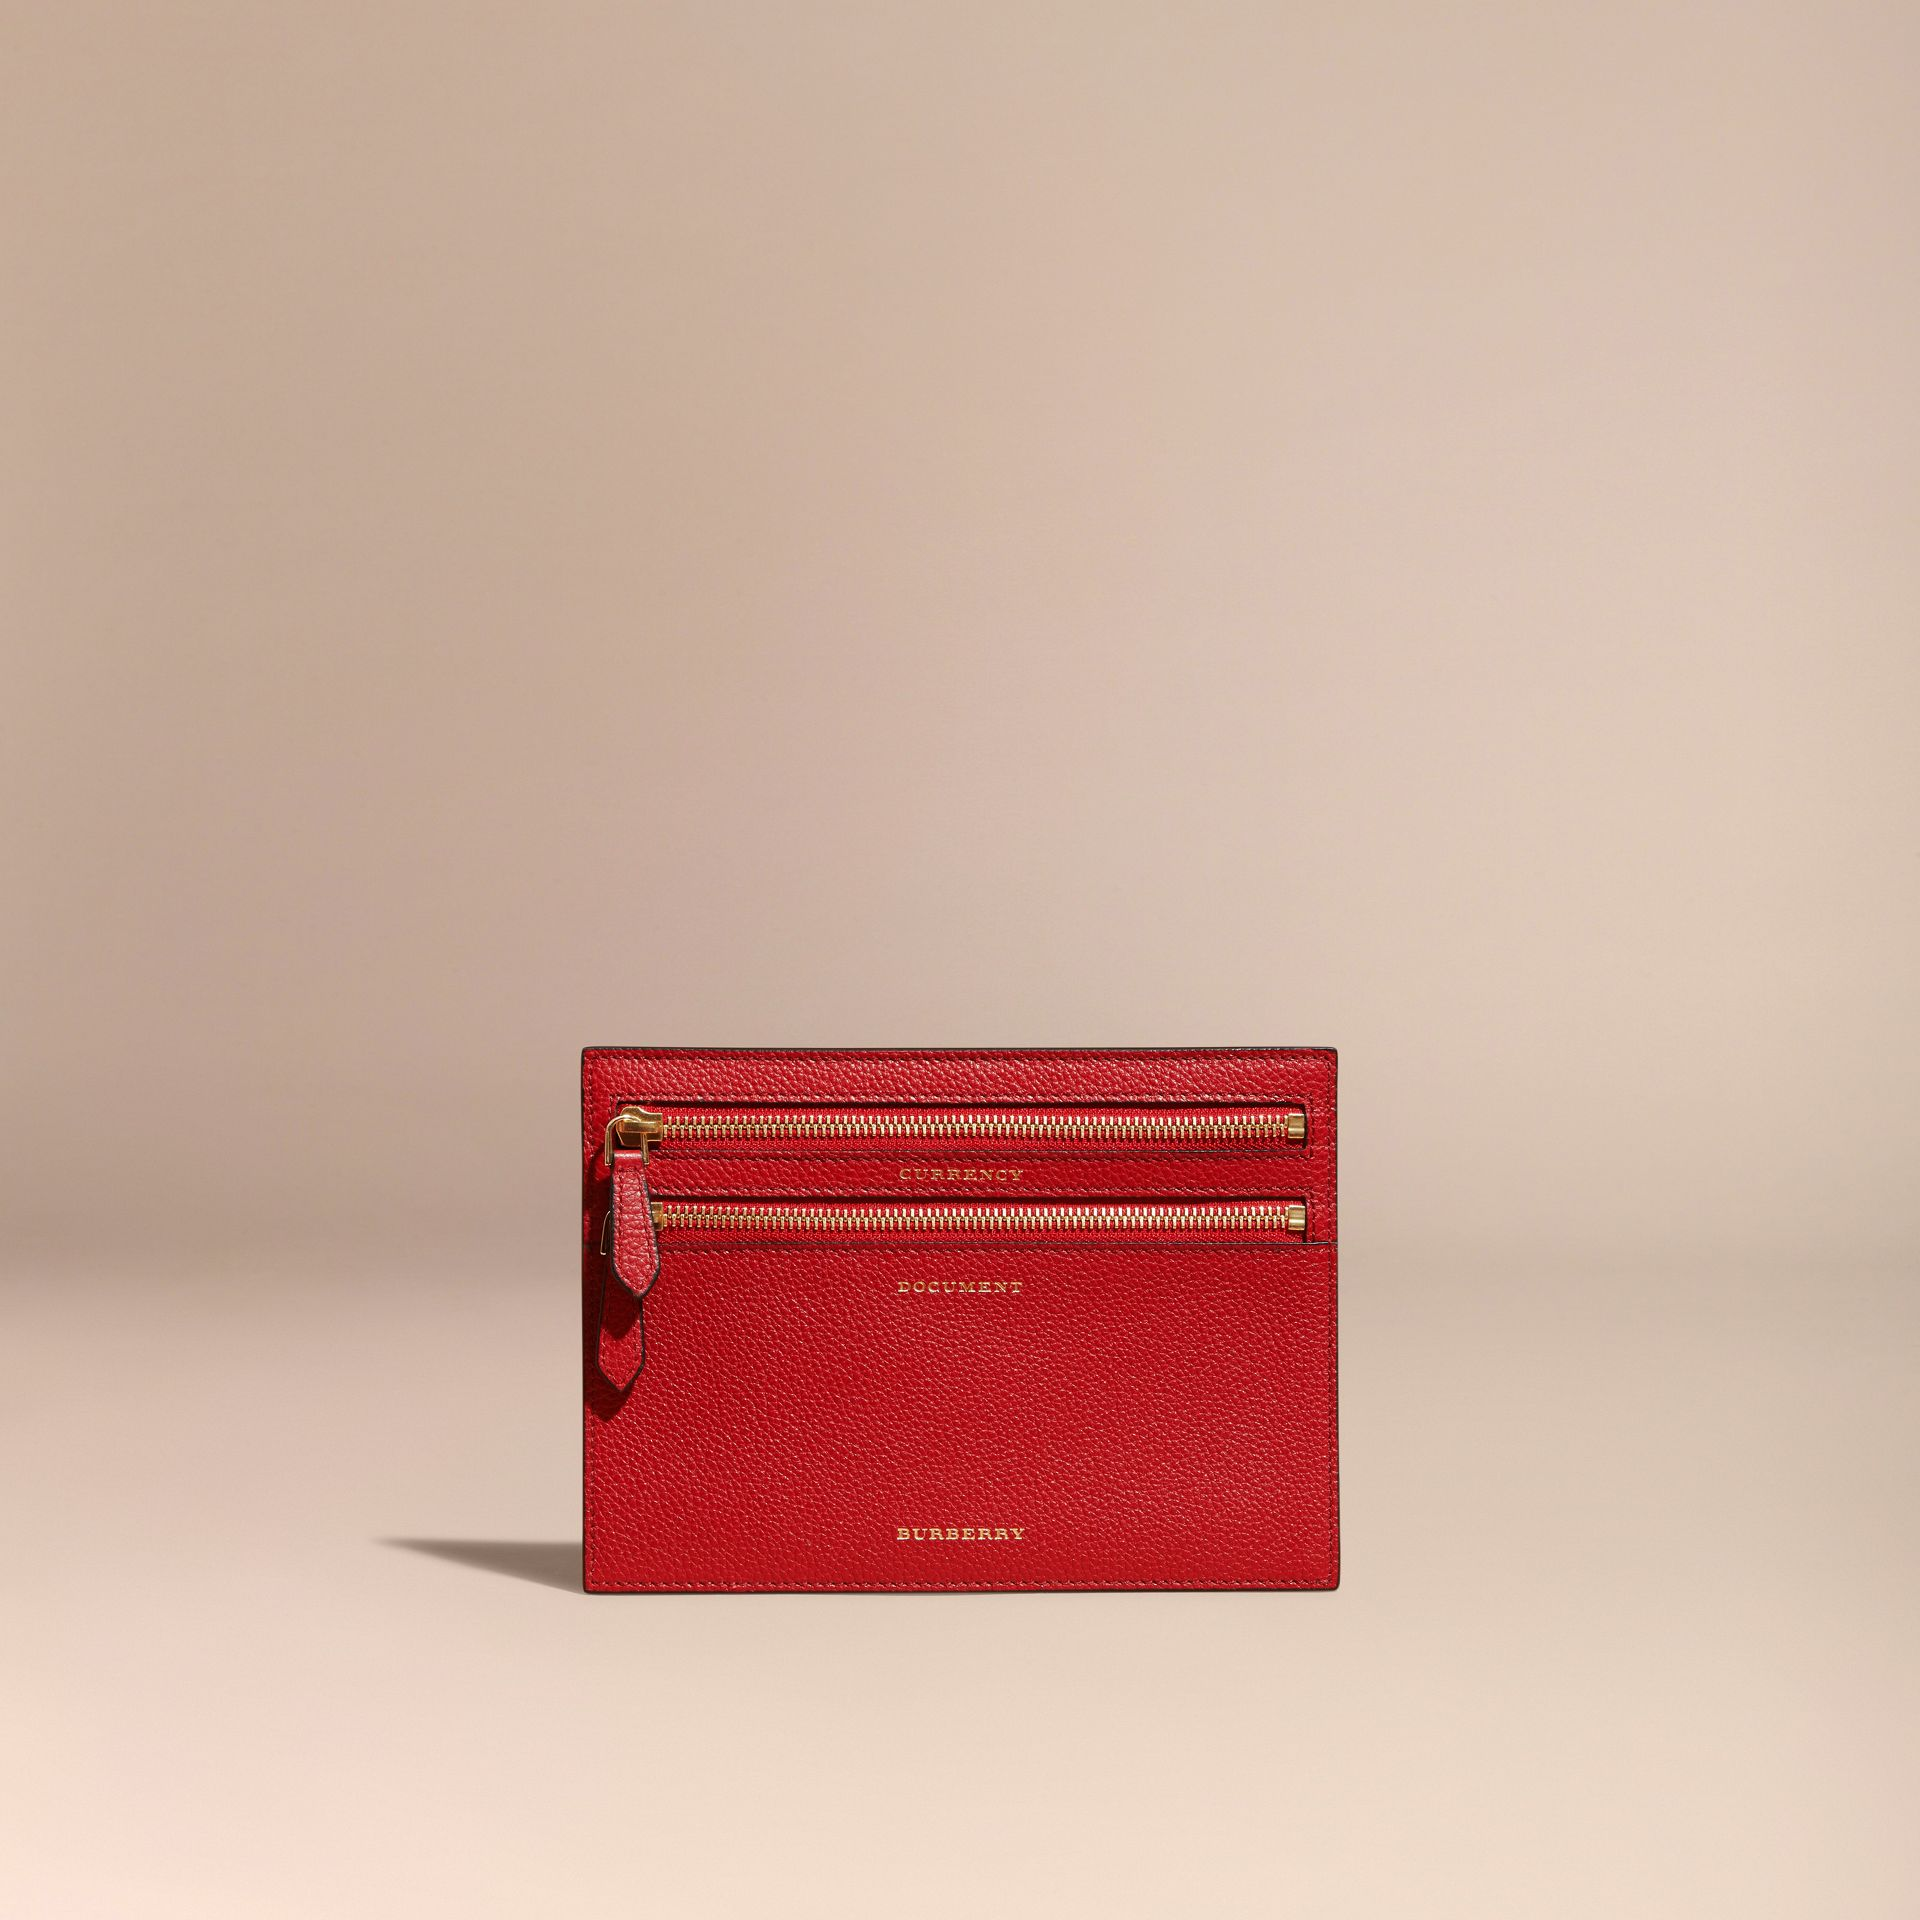 Grainy Leather Currency Wallet in Parade Red | Burberry Singapore - gallery image 5